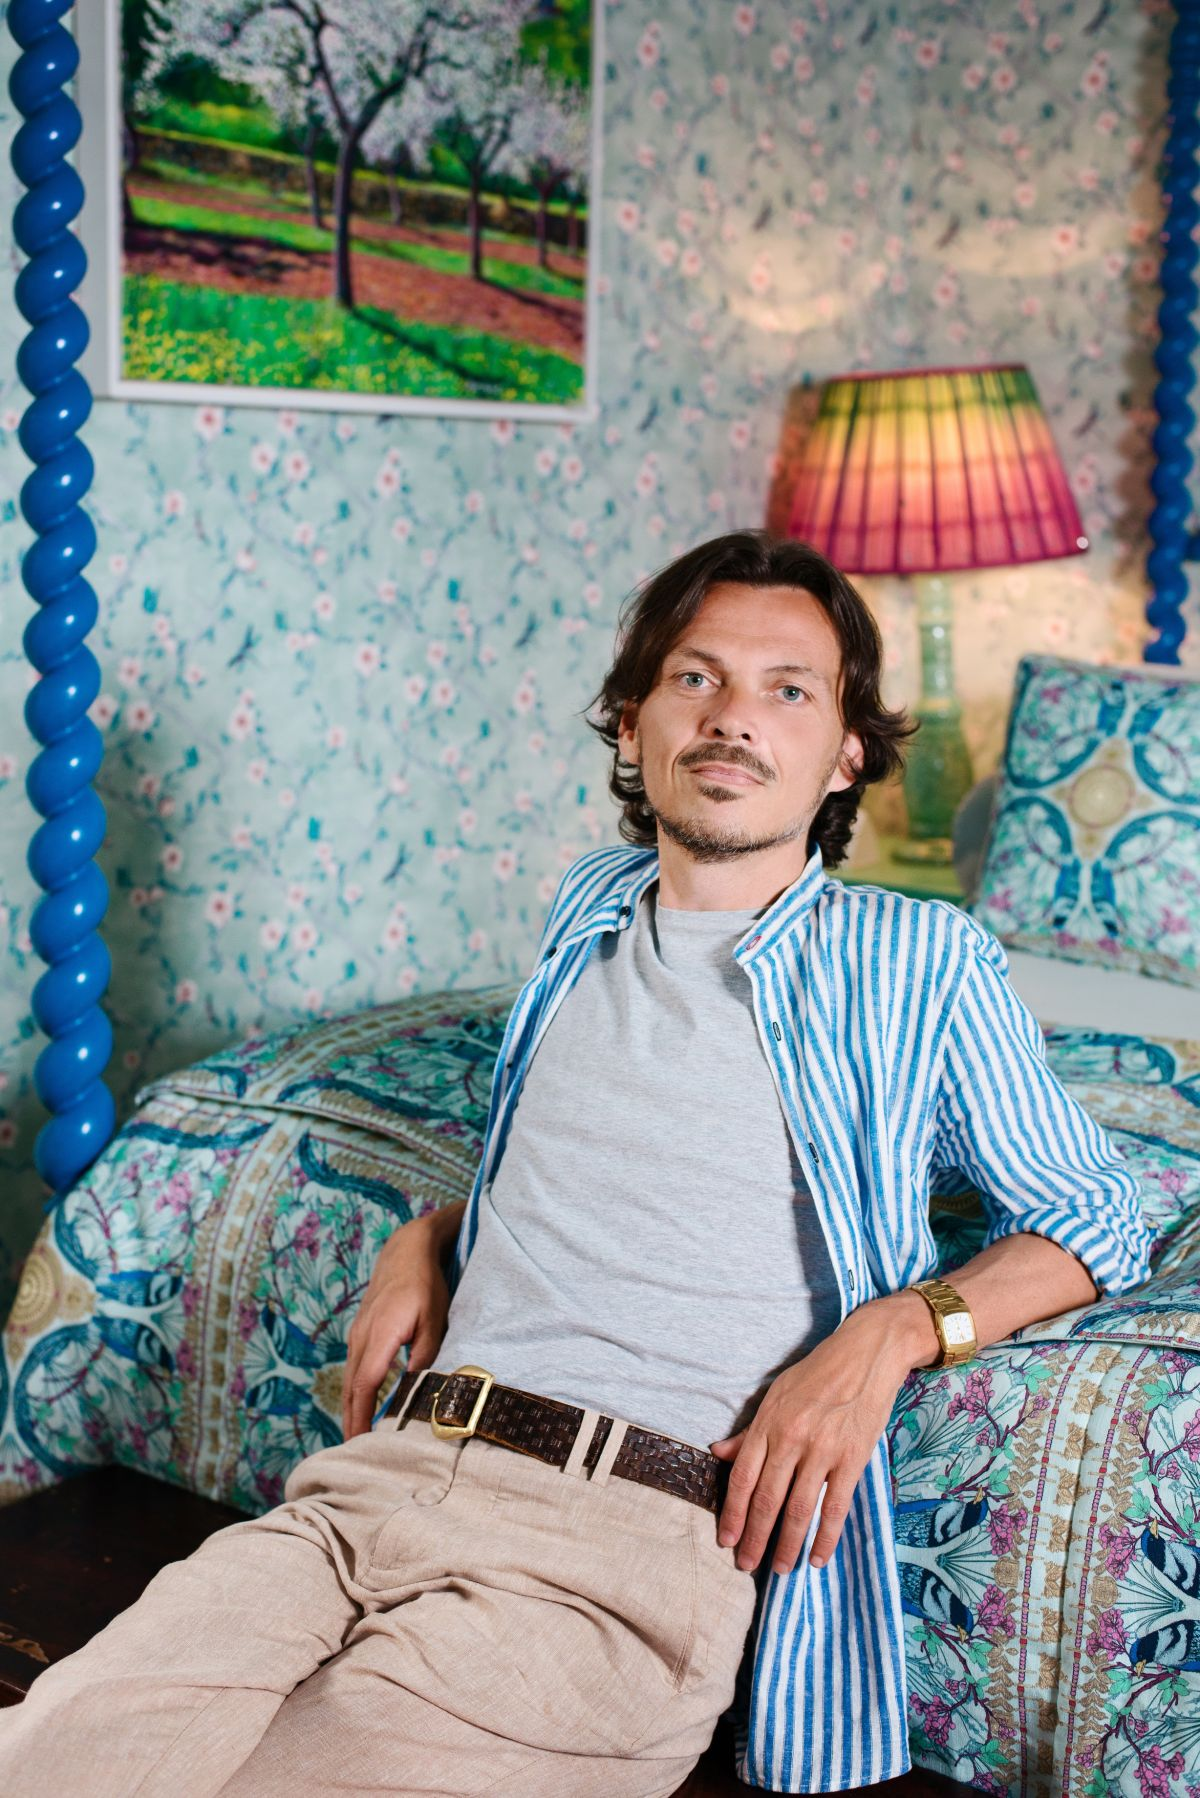 Matthew Williamson shares his interior design tips and secrets with H&G